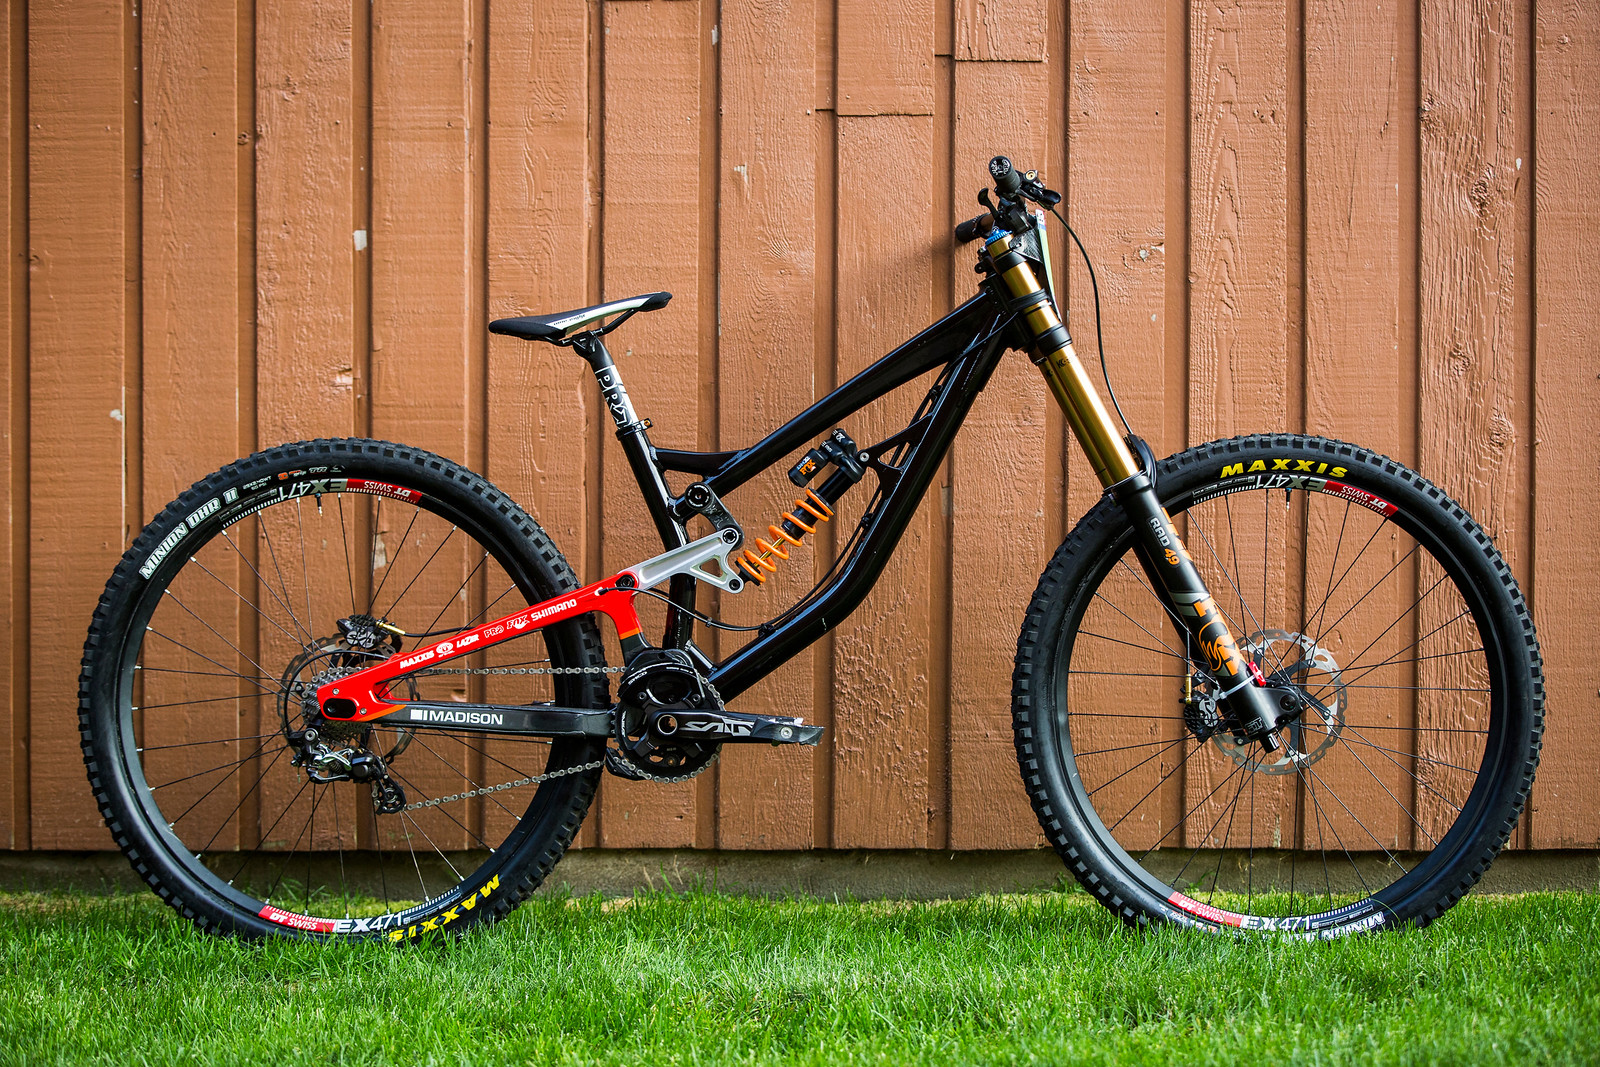 Prototype 29er Saracen DH bike for Matt Walker. This is the first 29er Matt has ridden and his first time in MSA. Seems to be working ok so far!